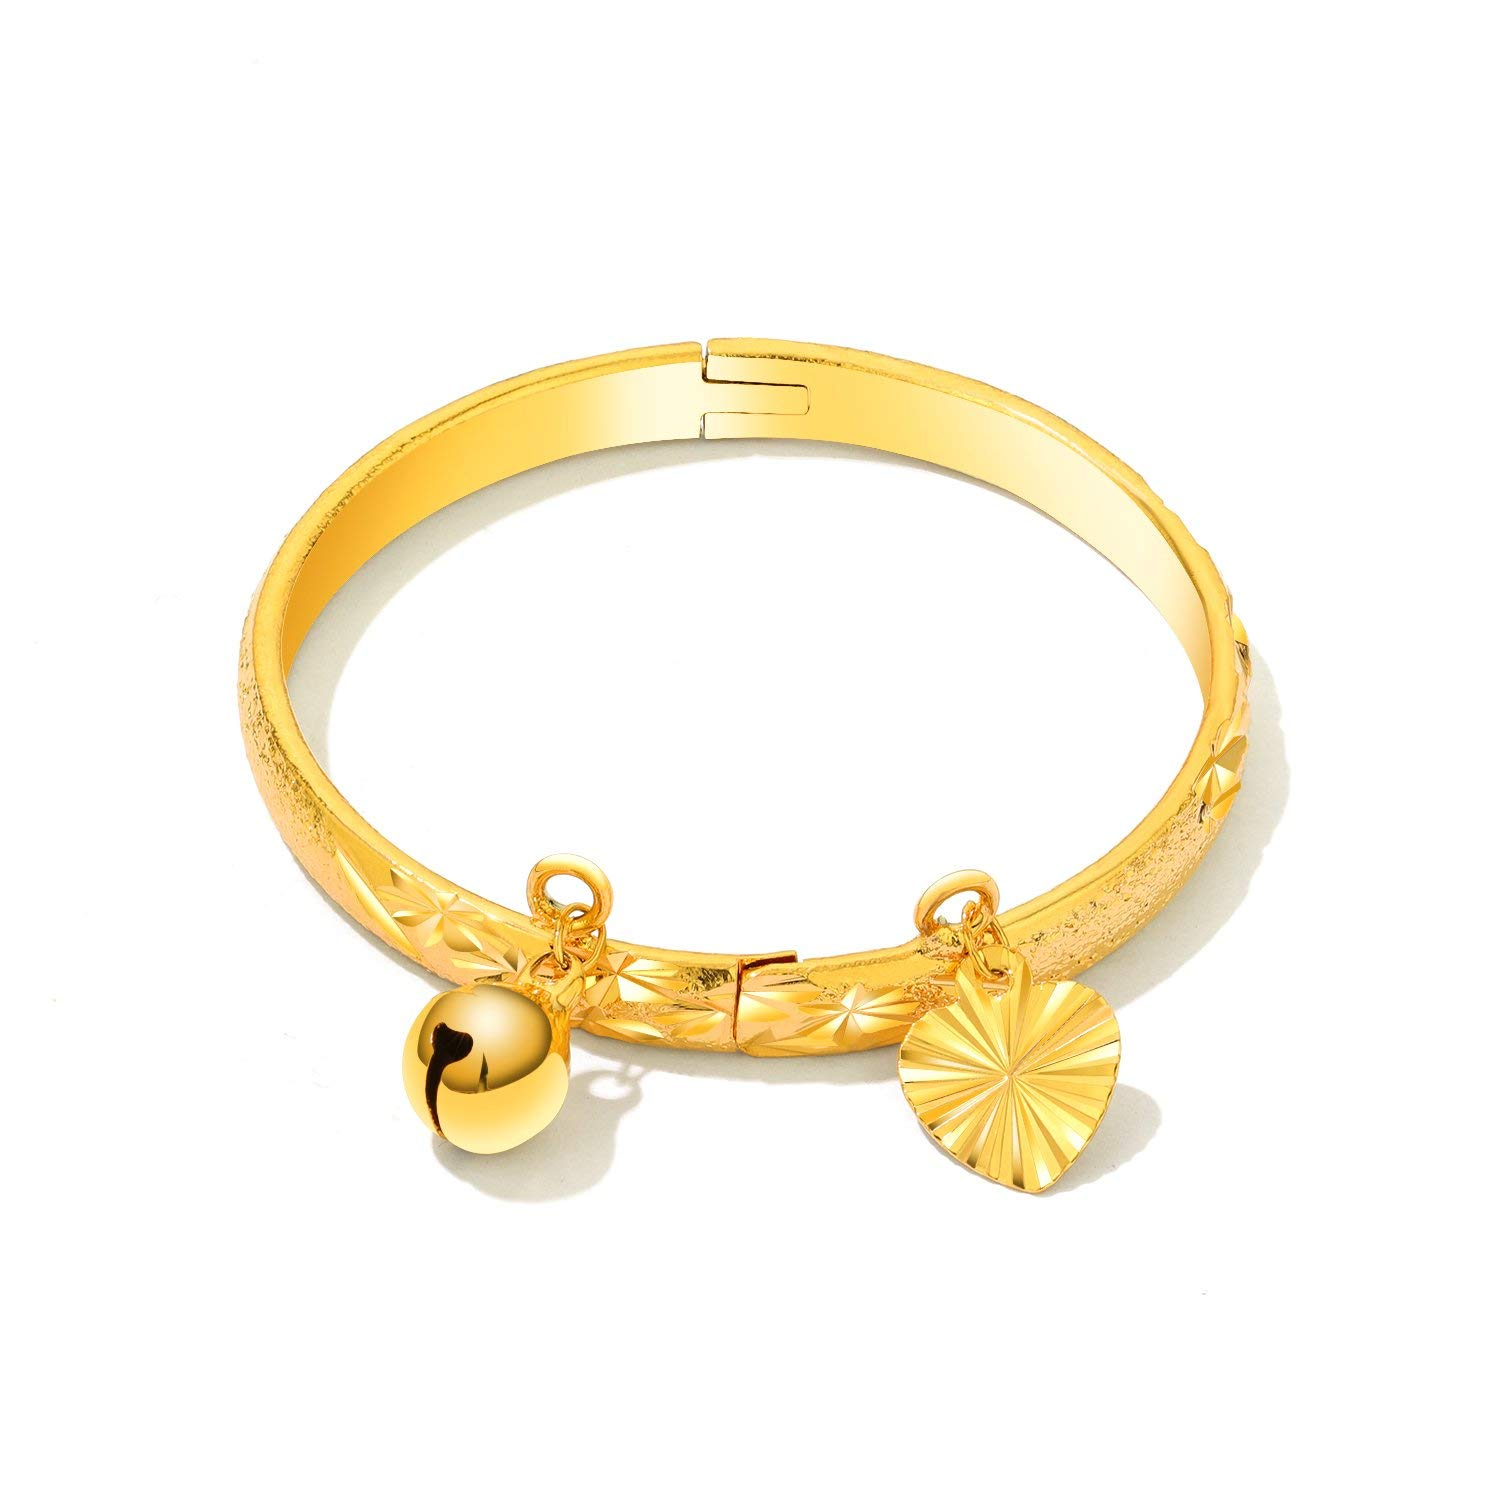 5d2fe1df9 Get Quotations · Opk Jewelry Fashion Gold Plated Children's Bangle Heart  and Bell Pendant Cuff Bracelets